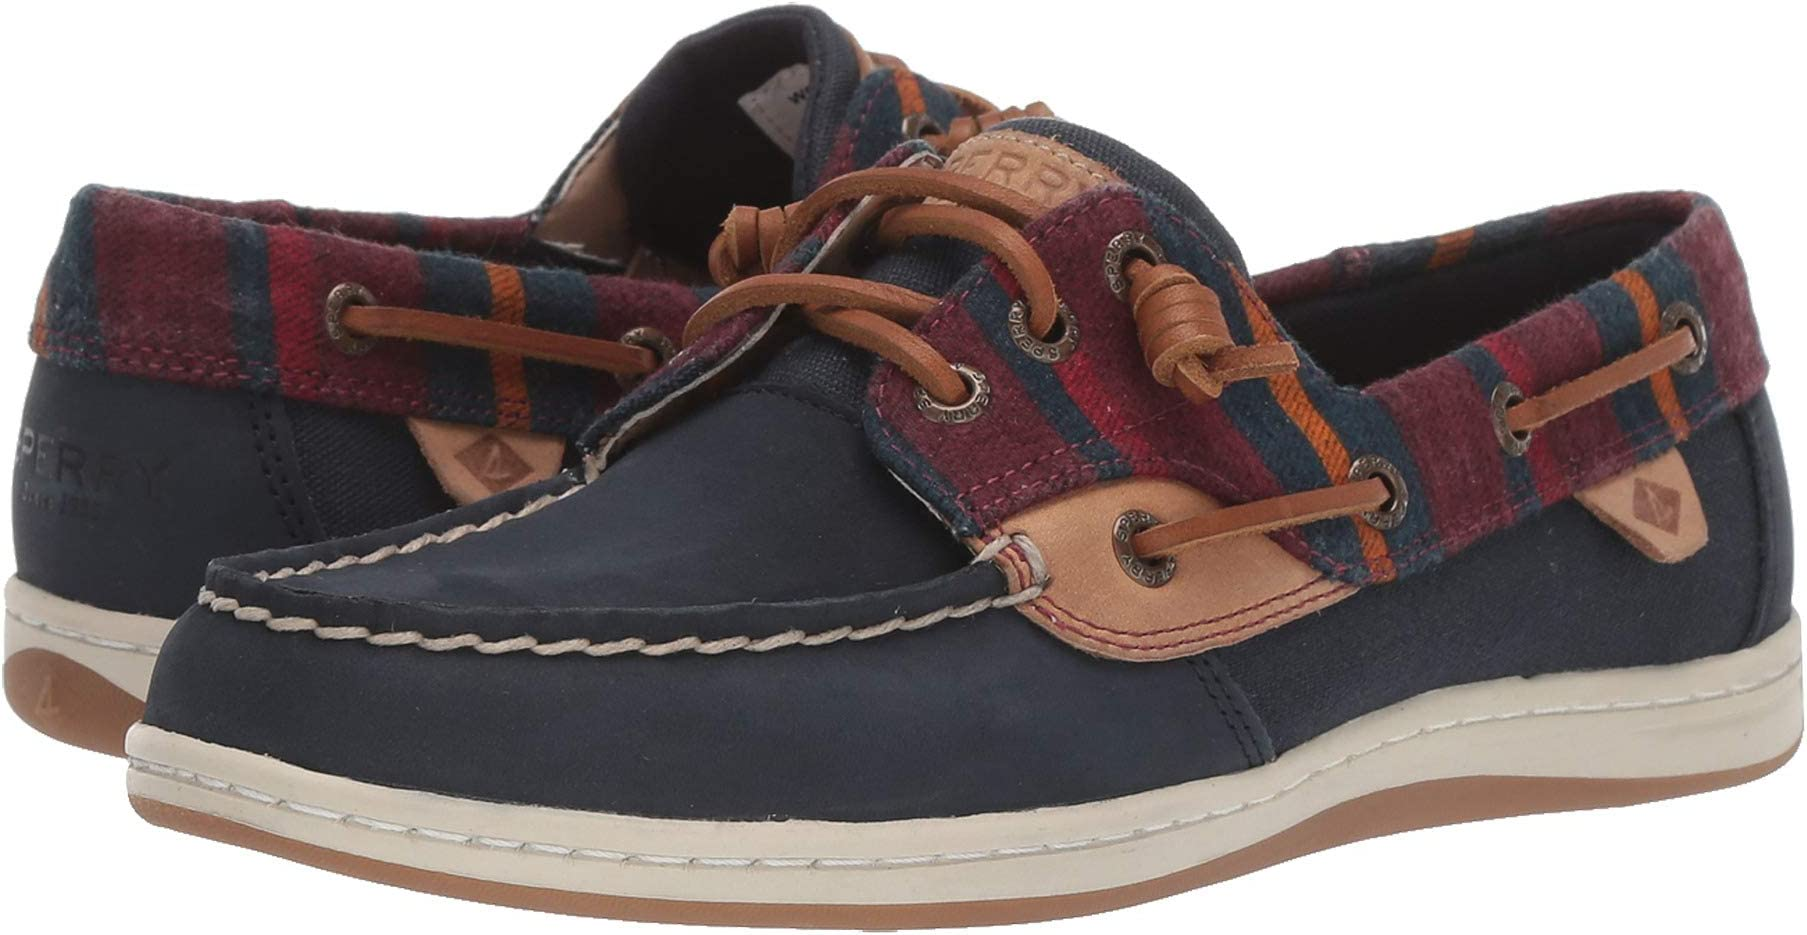 Sperry Boat Shoes Sandals Zappos Com Zappos Com